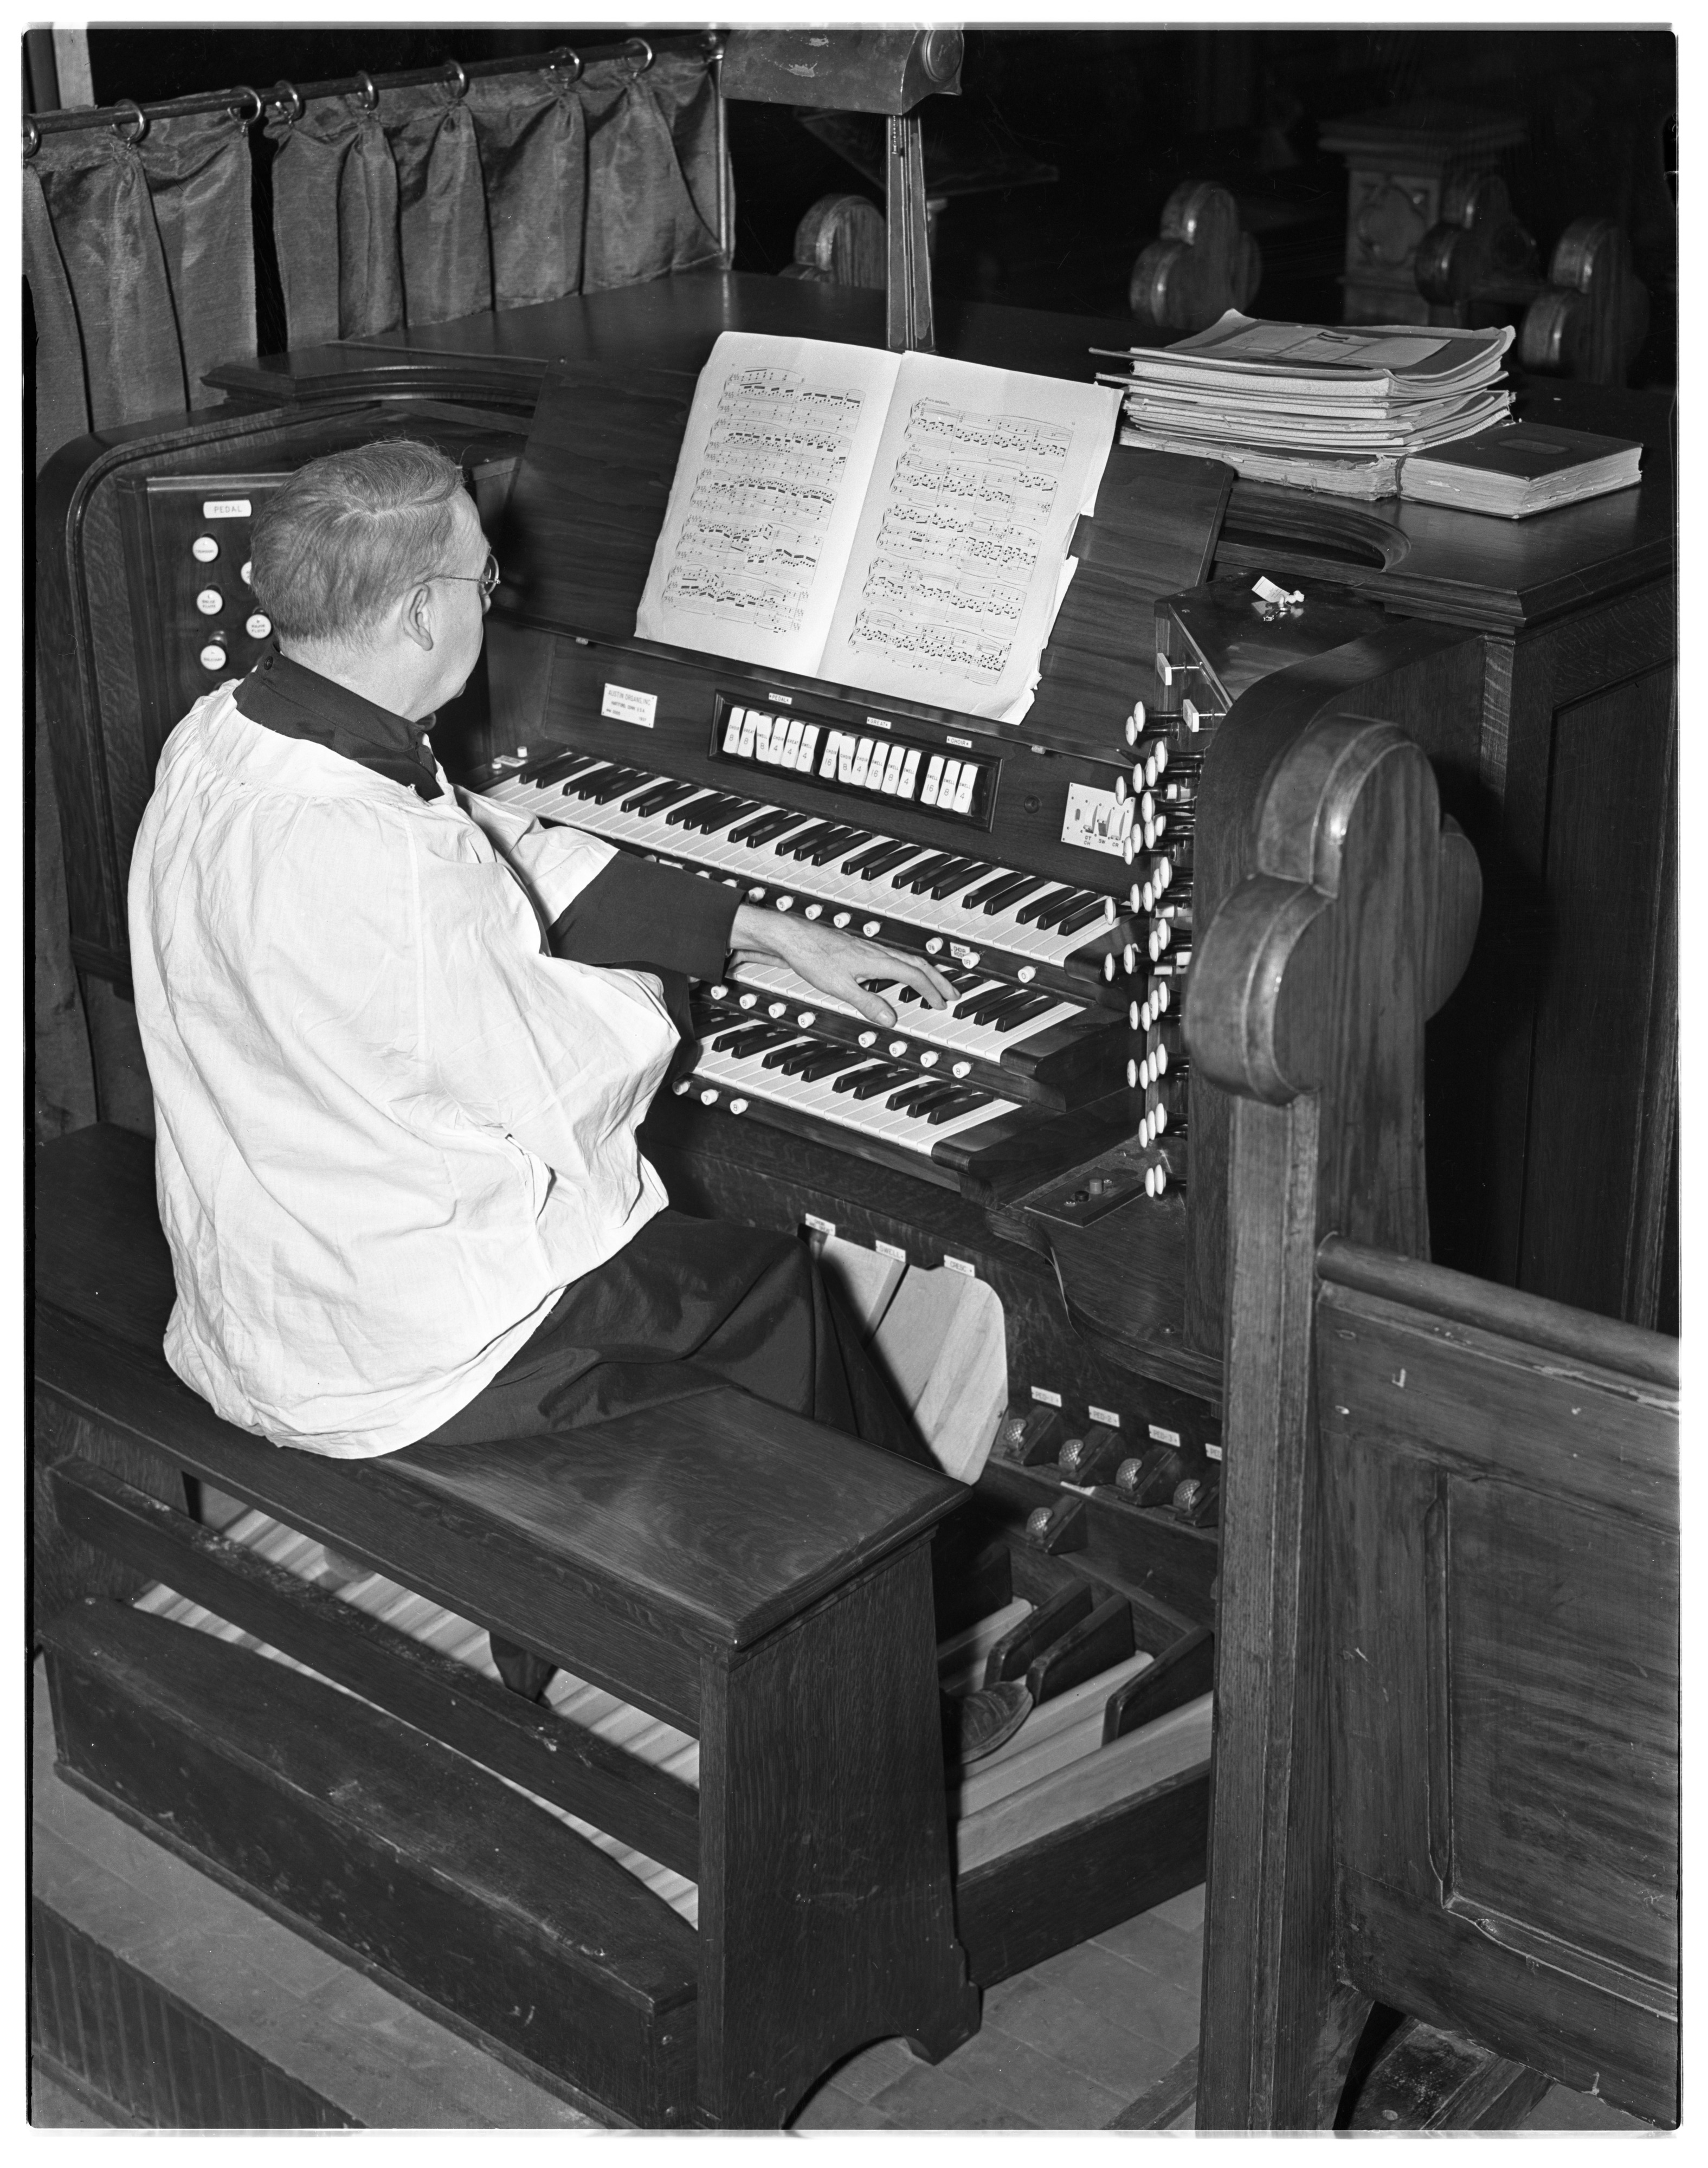 Nowell Swain Ferris Plays New Organ at St. Andrew's Episcopal Church, February 1938 image